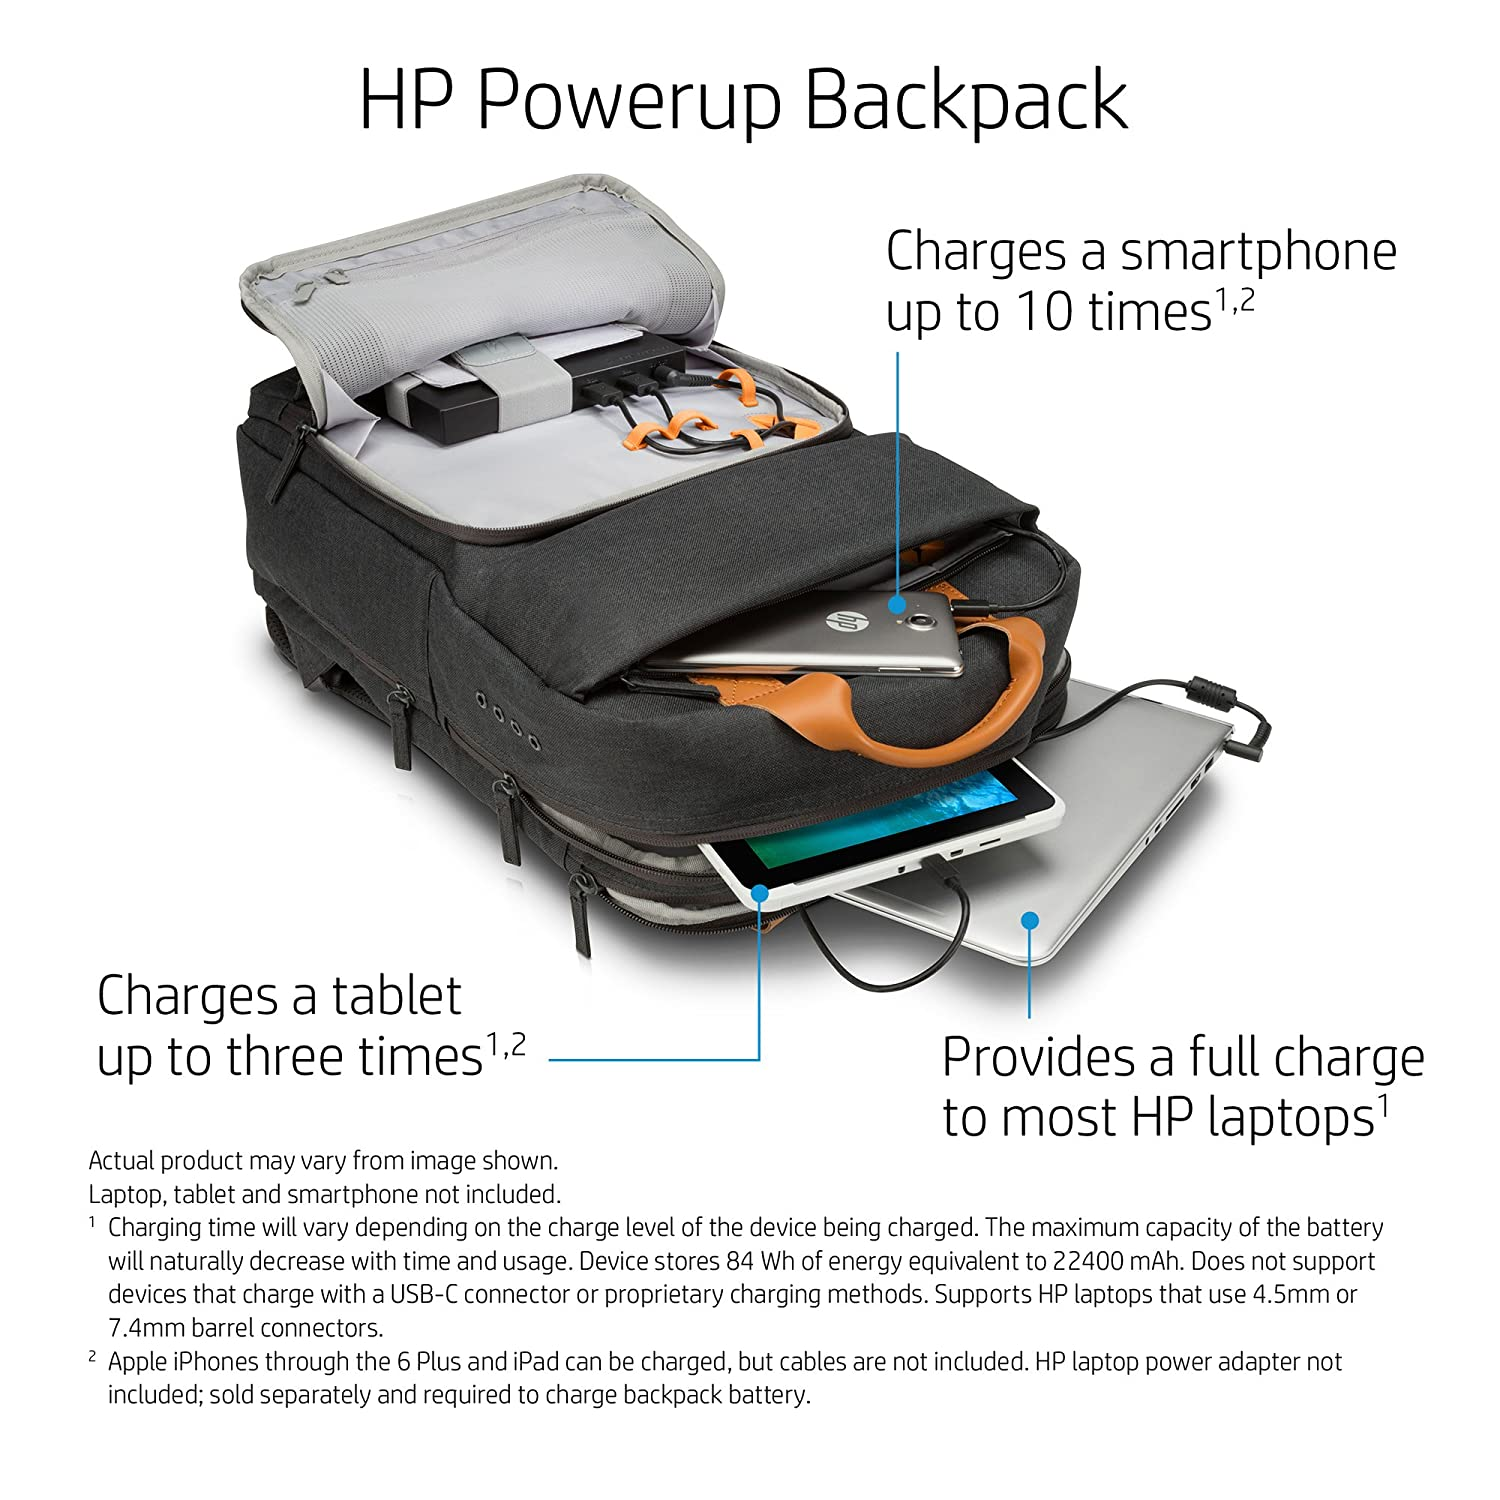 Amazon HP W7Q03AA ABC 17 inch Laptop Canvas Backpack with mAh Battery Charging Pack Grey puters & Accessories